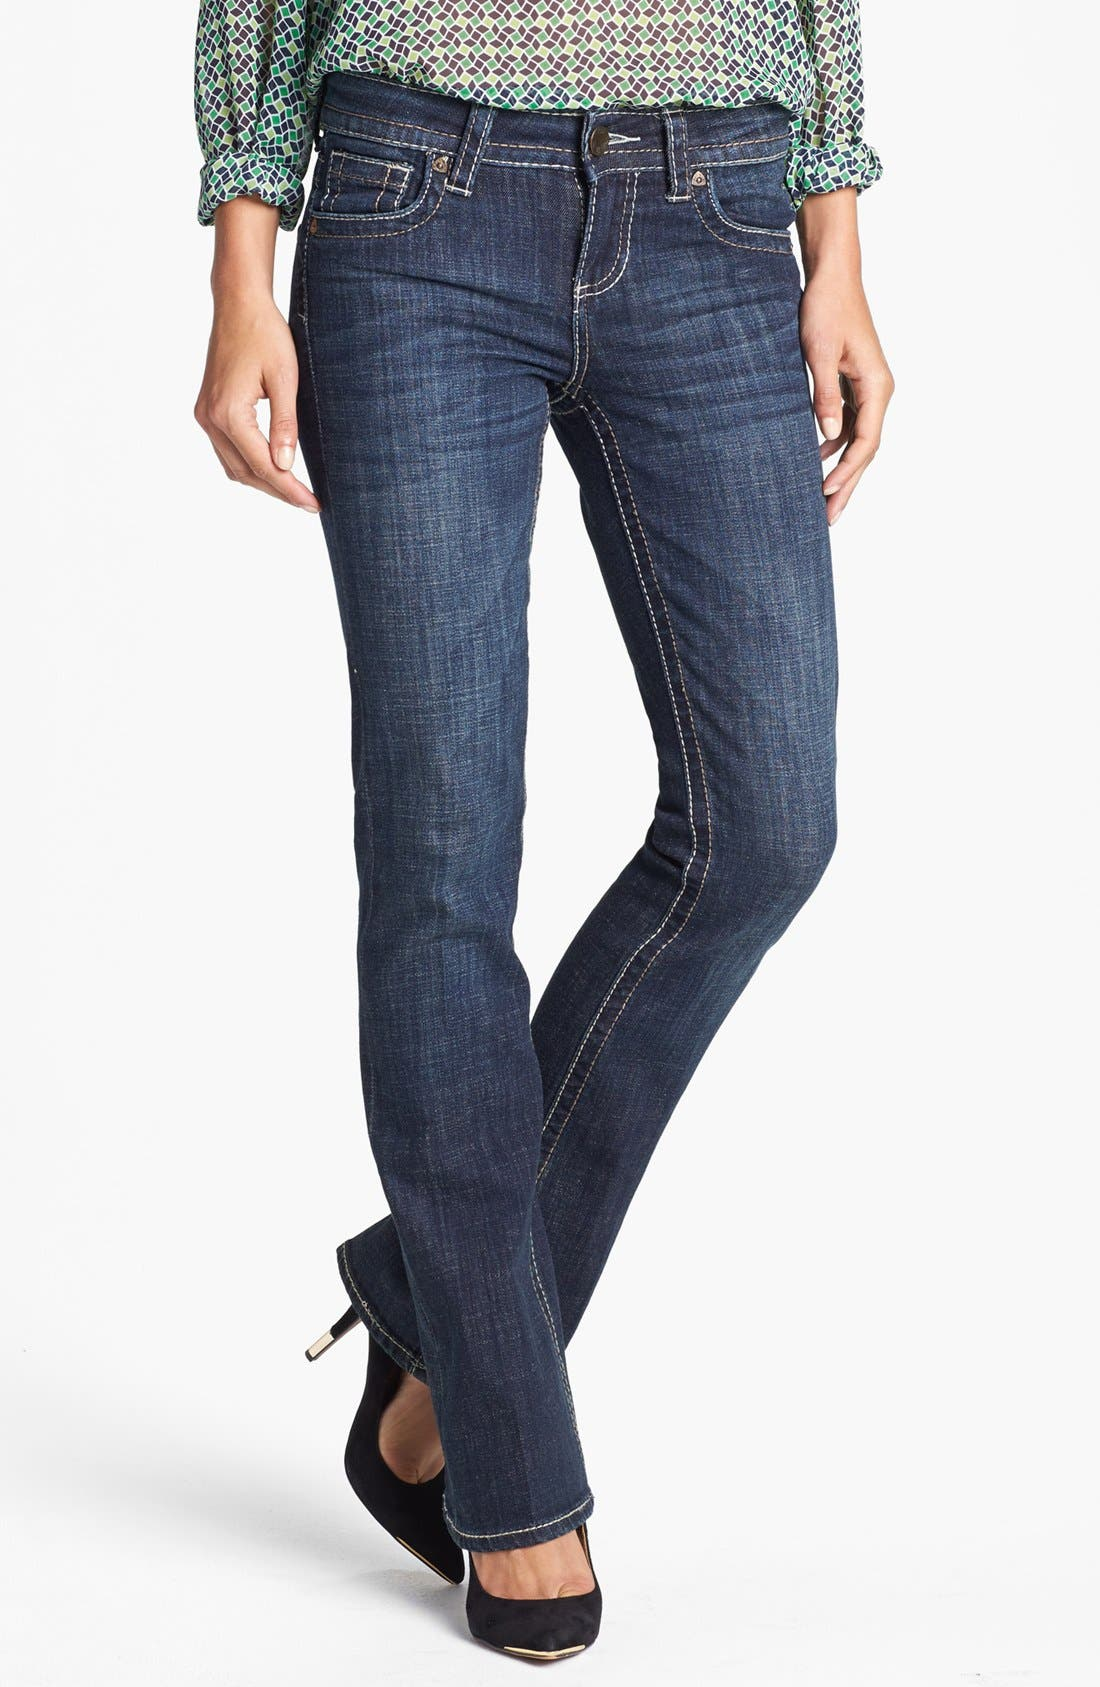 Alternate Image 1 Selected - KUT from the Kloth 'Natalie' Bootcut Jeans (Regular & Tall) (Care)